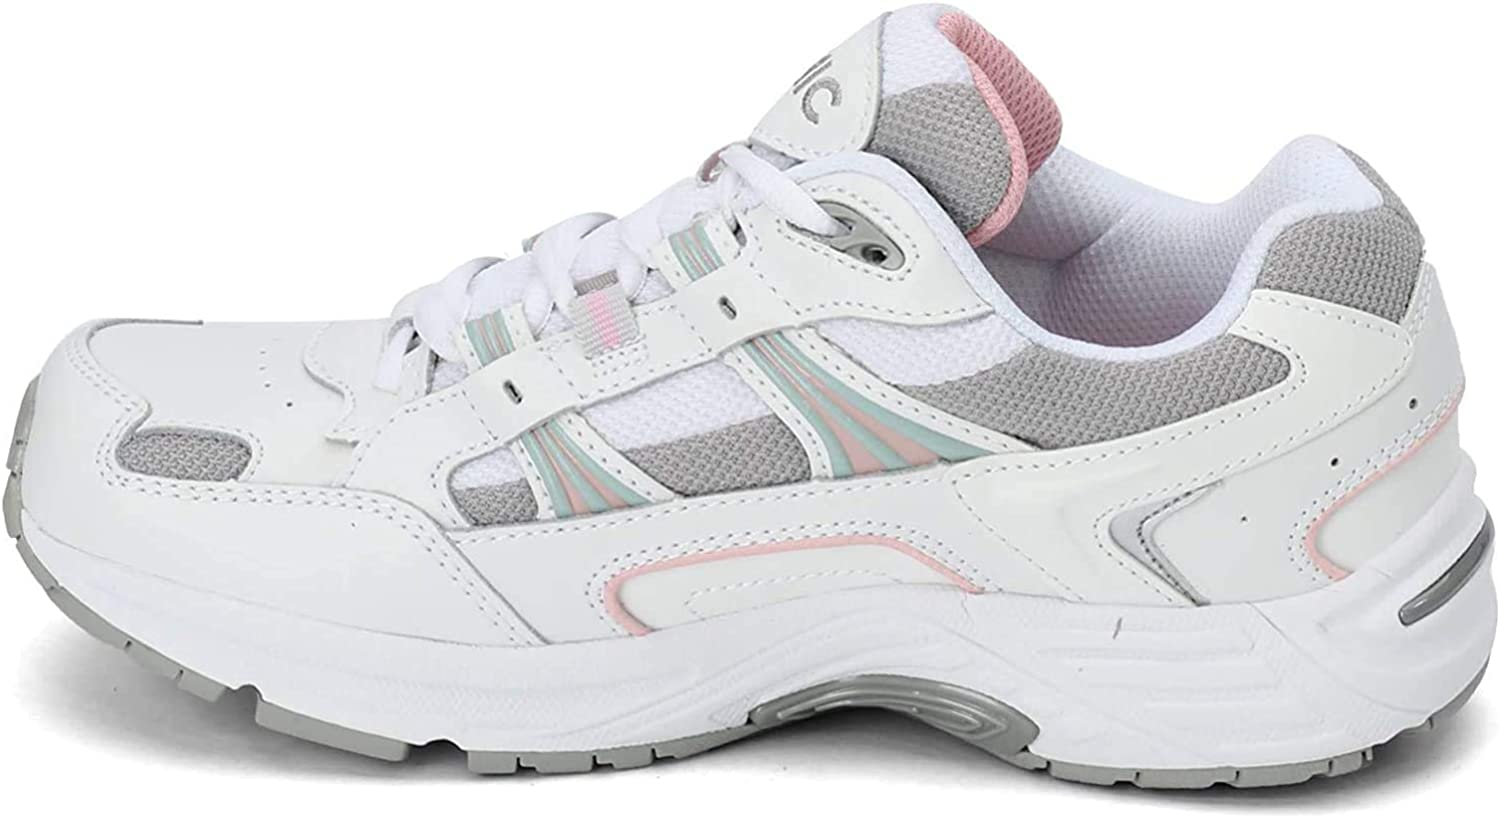 Vionic Women's Walker Classic Comfortable Leisure Shoes- Supportive Walking Sneakers That Include Three-Zone Comfort with Orthotic Insole Arch Support